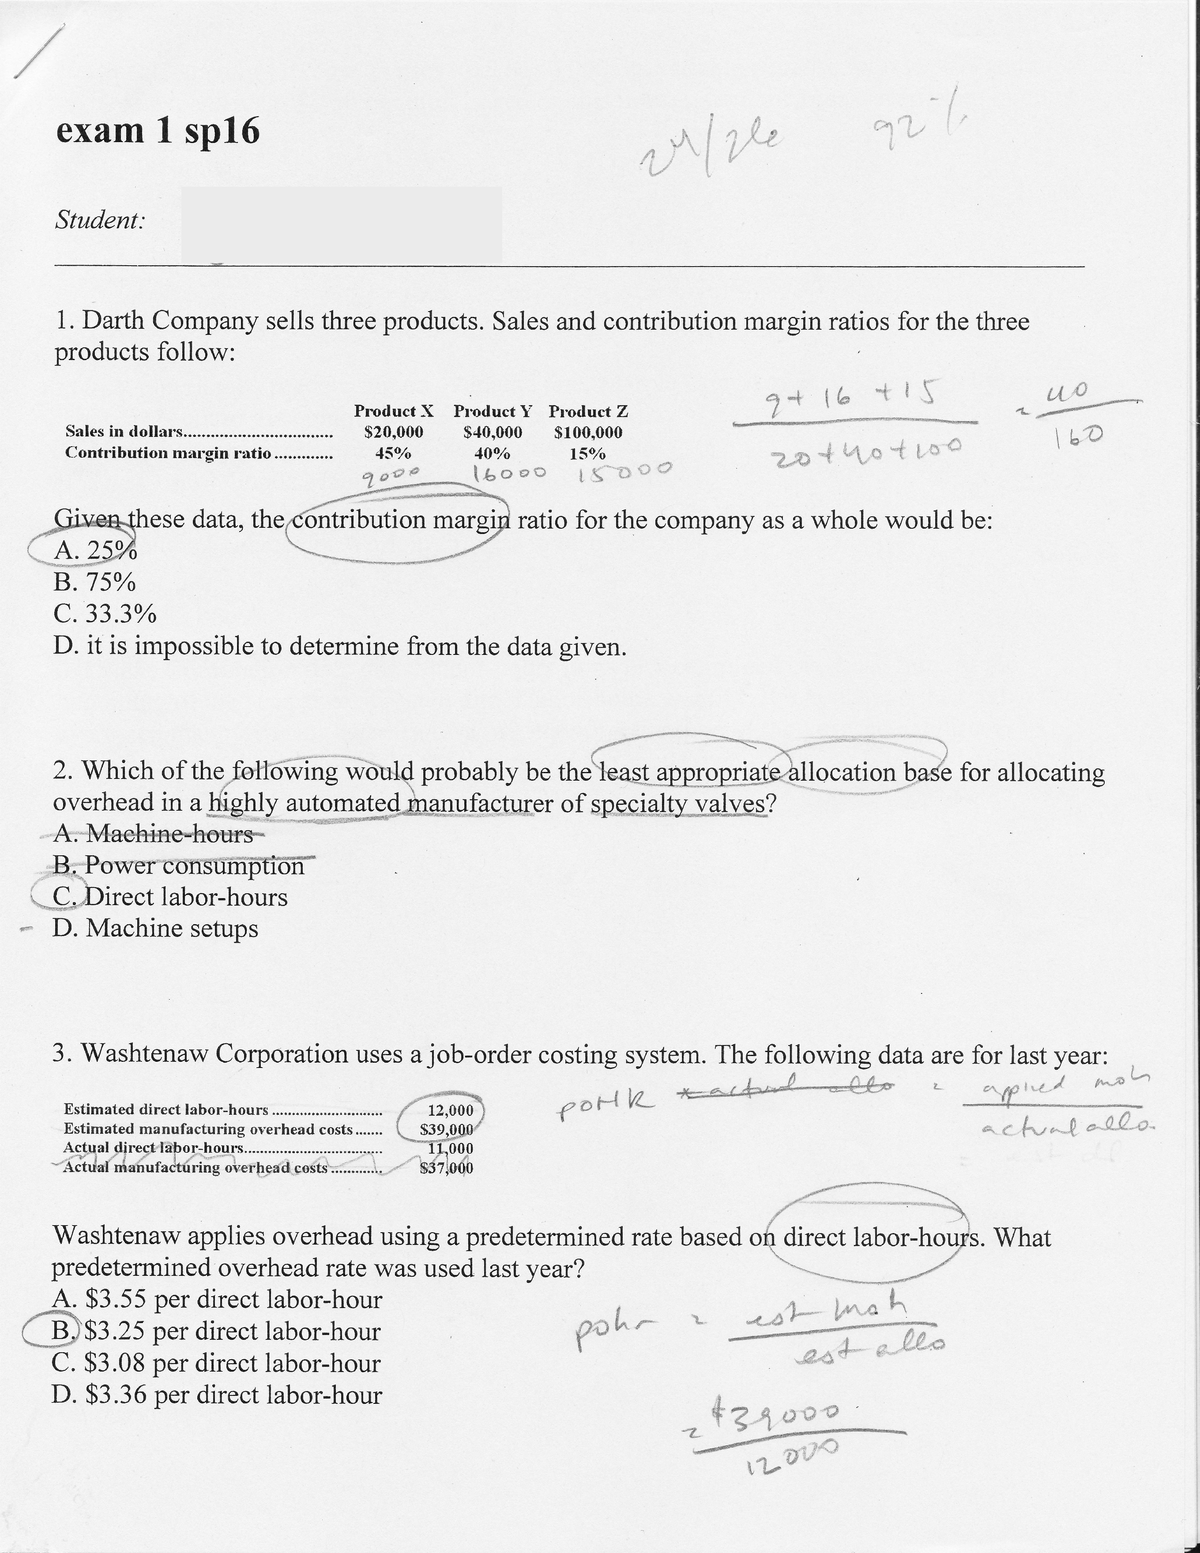 Exam 2016, questions and answers - First midterm - BMGT321